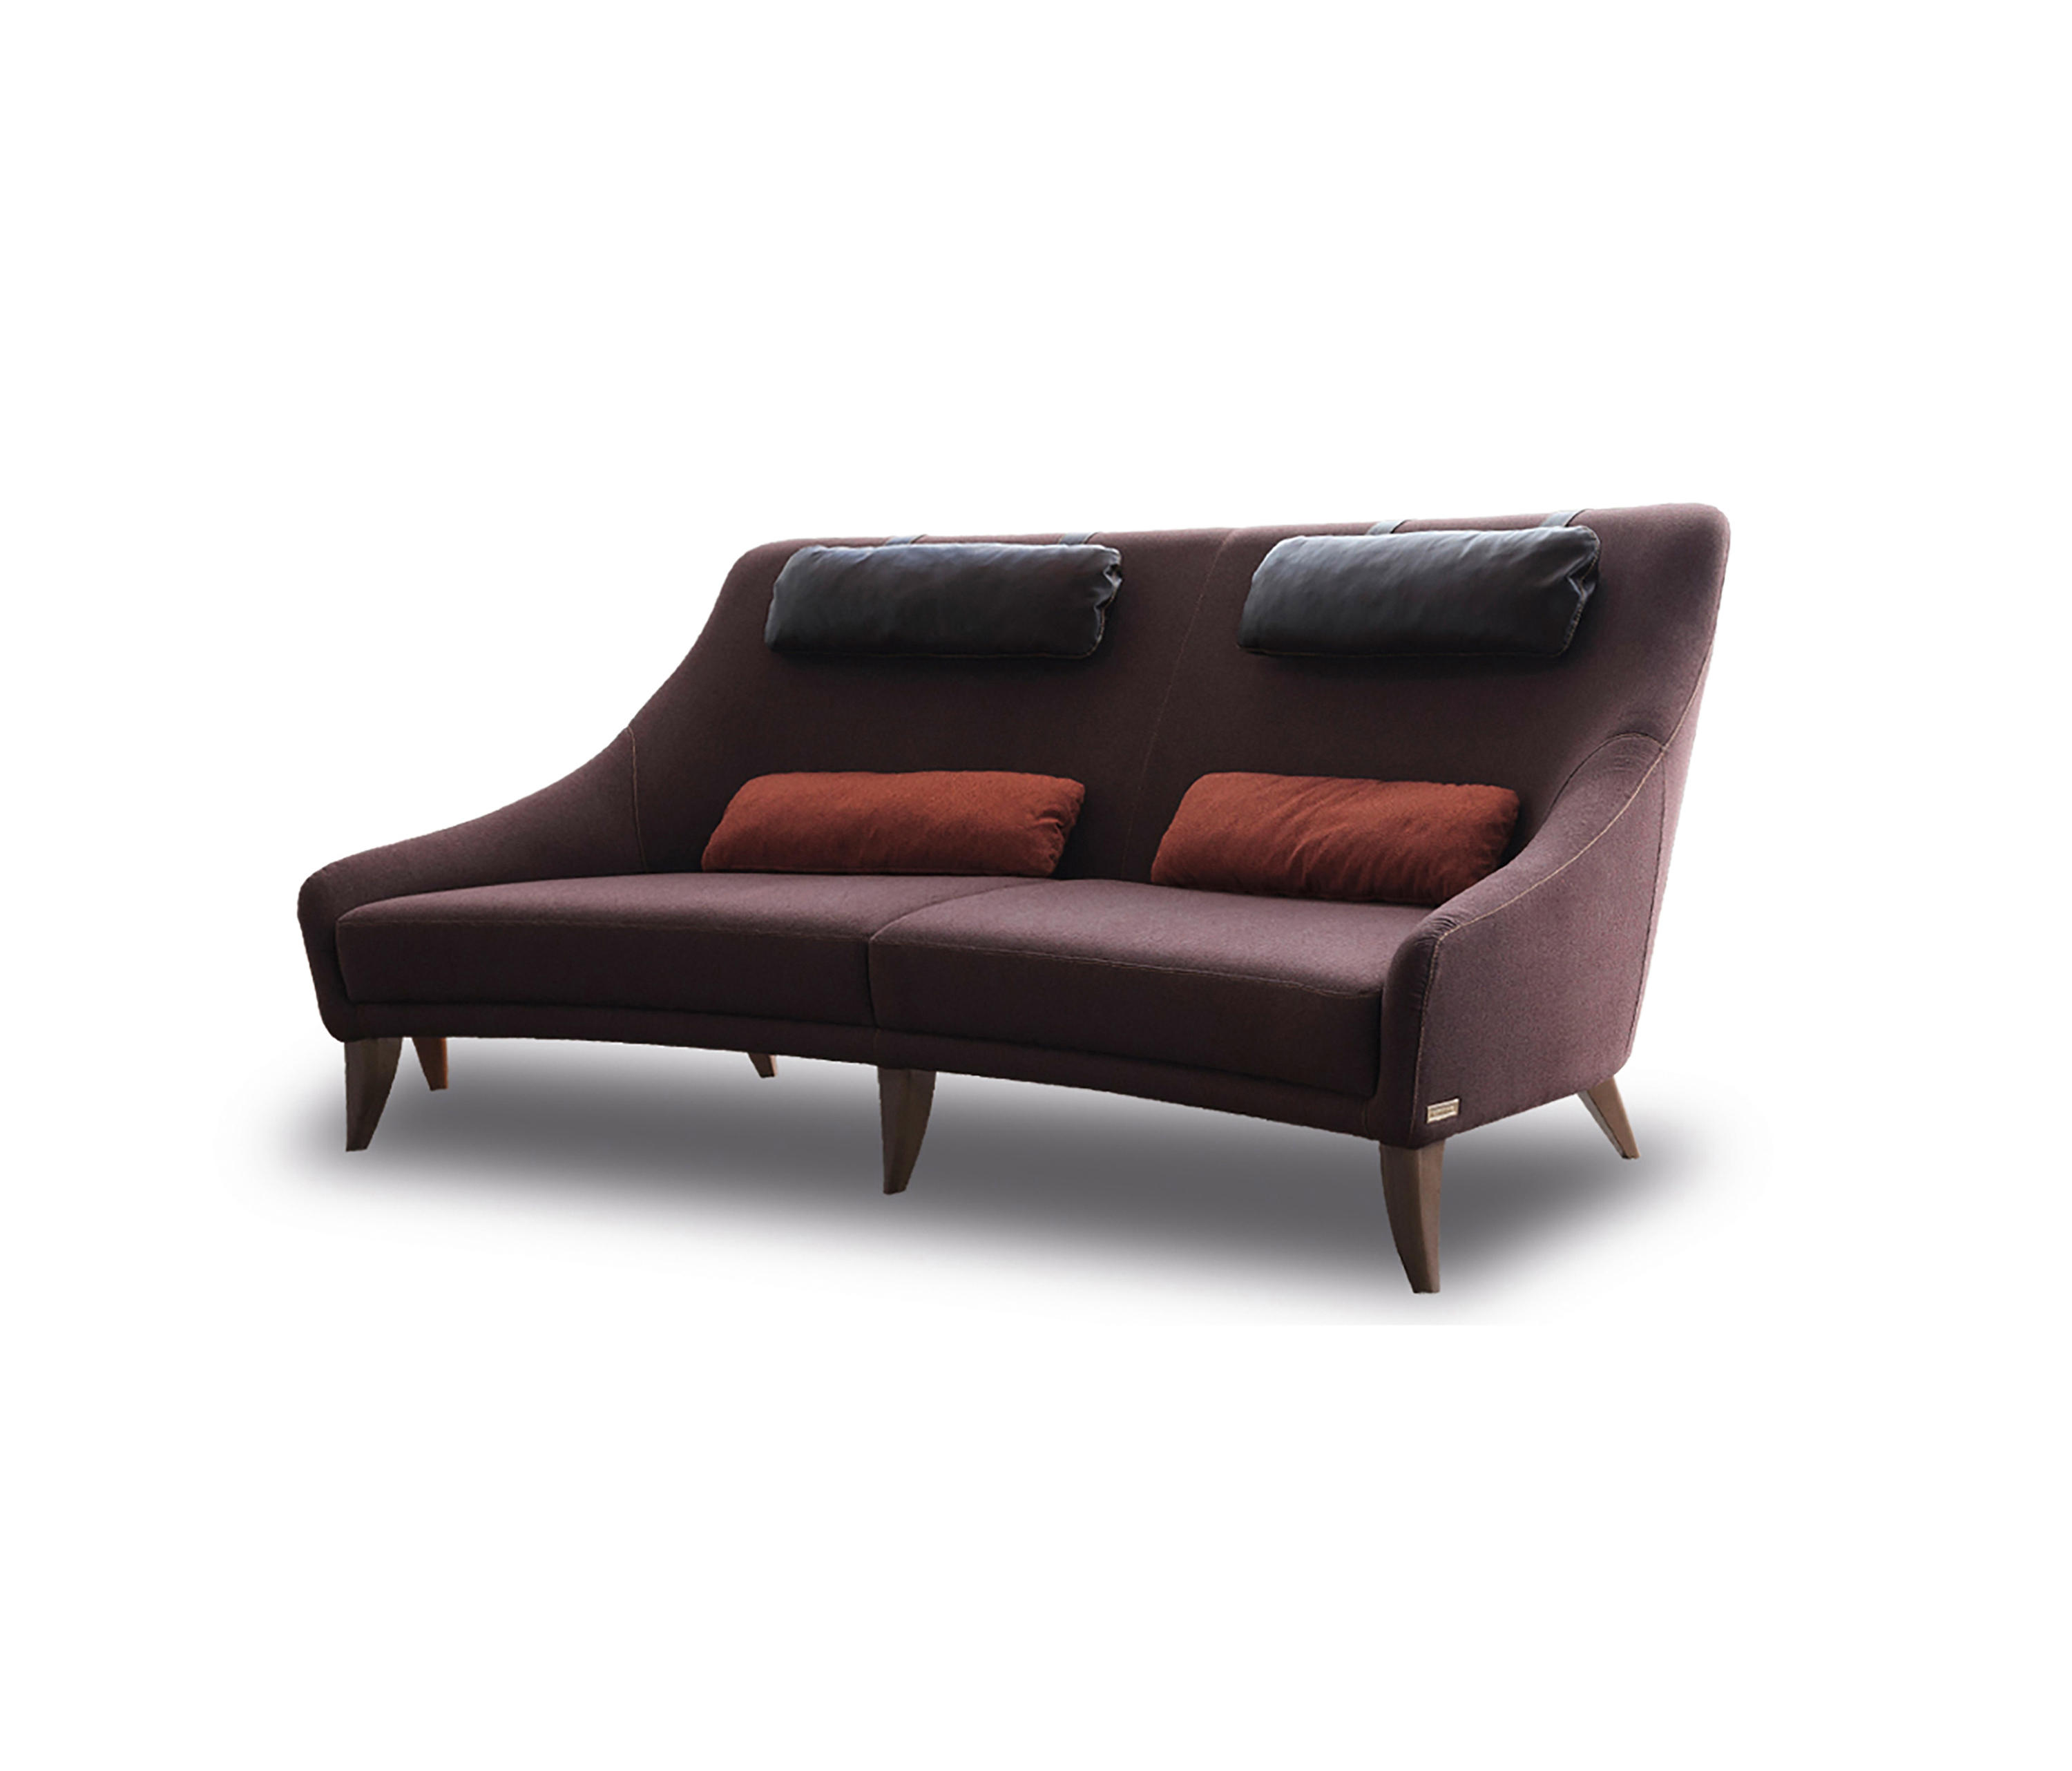 1734 SOFA Sofas from Tecni Nova